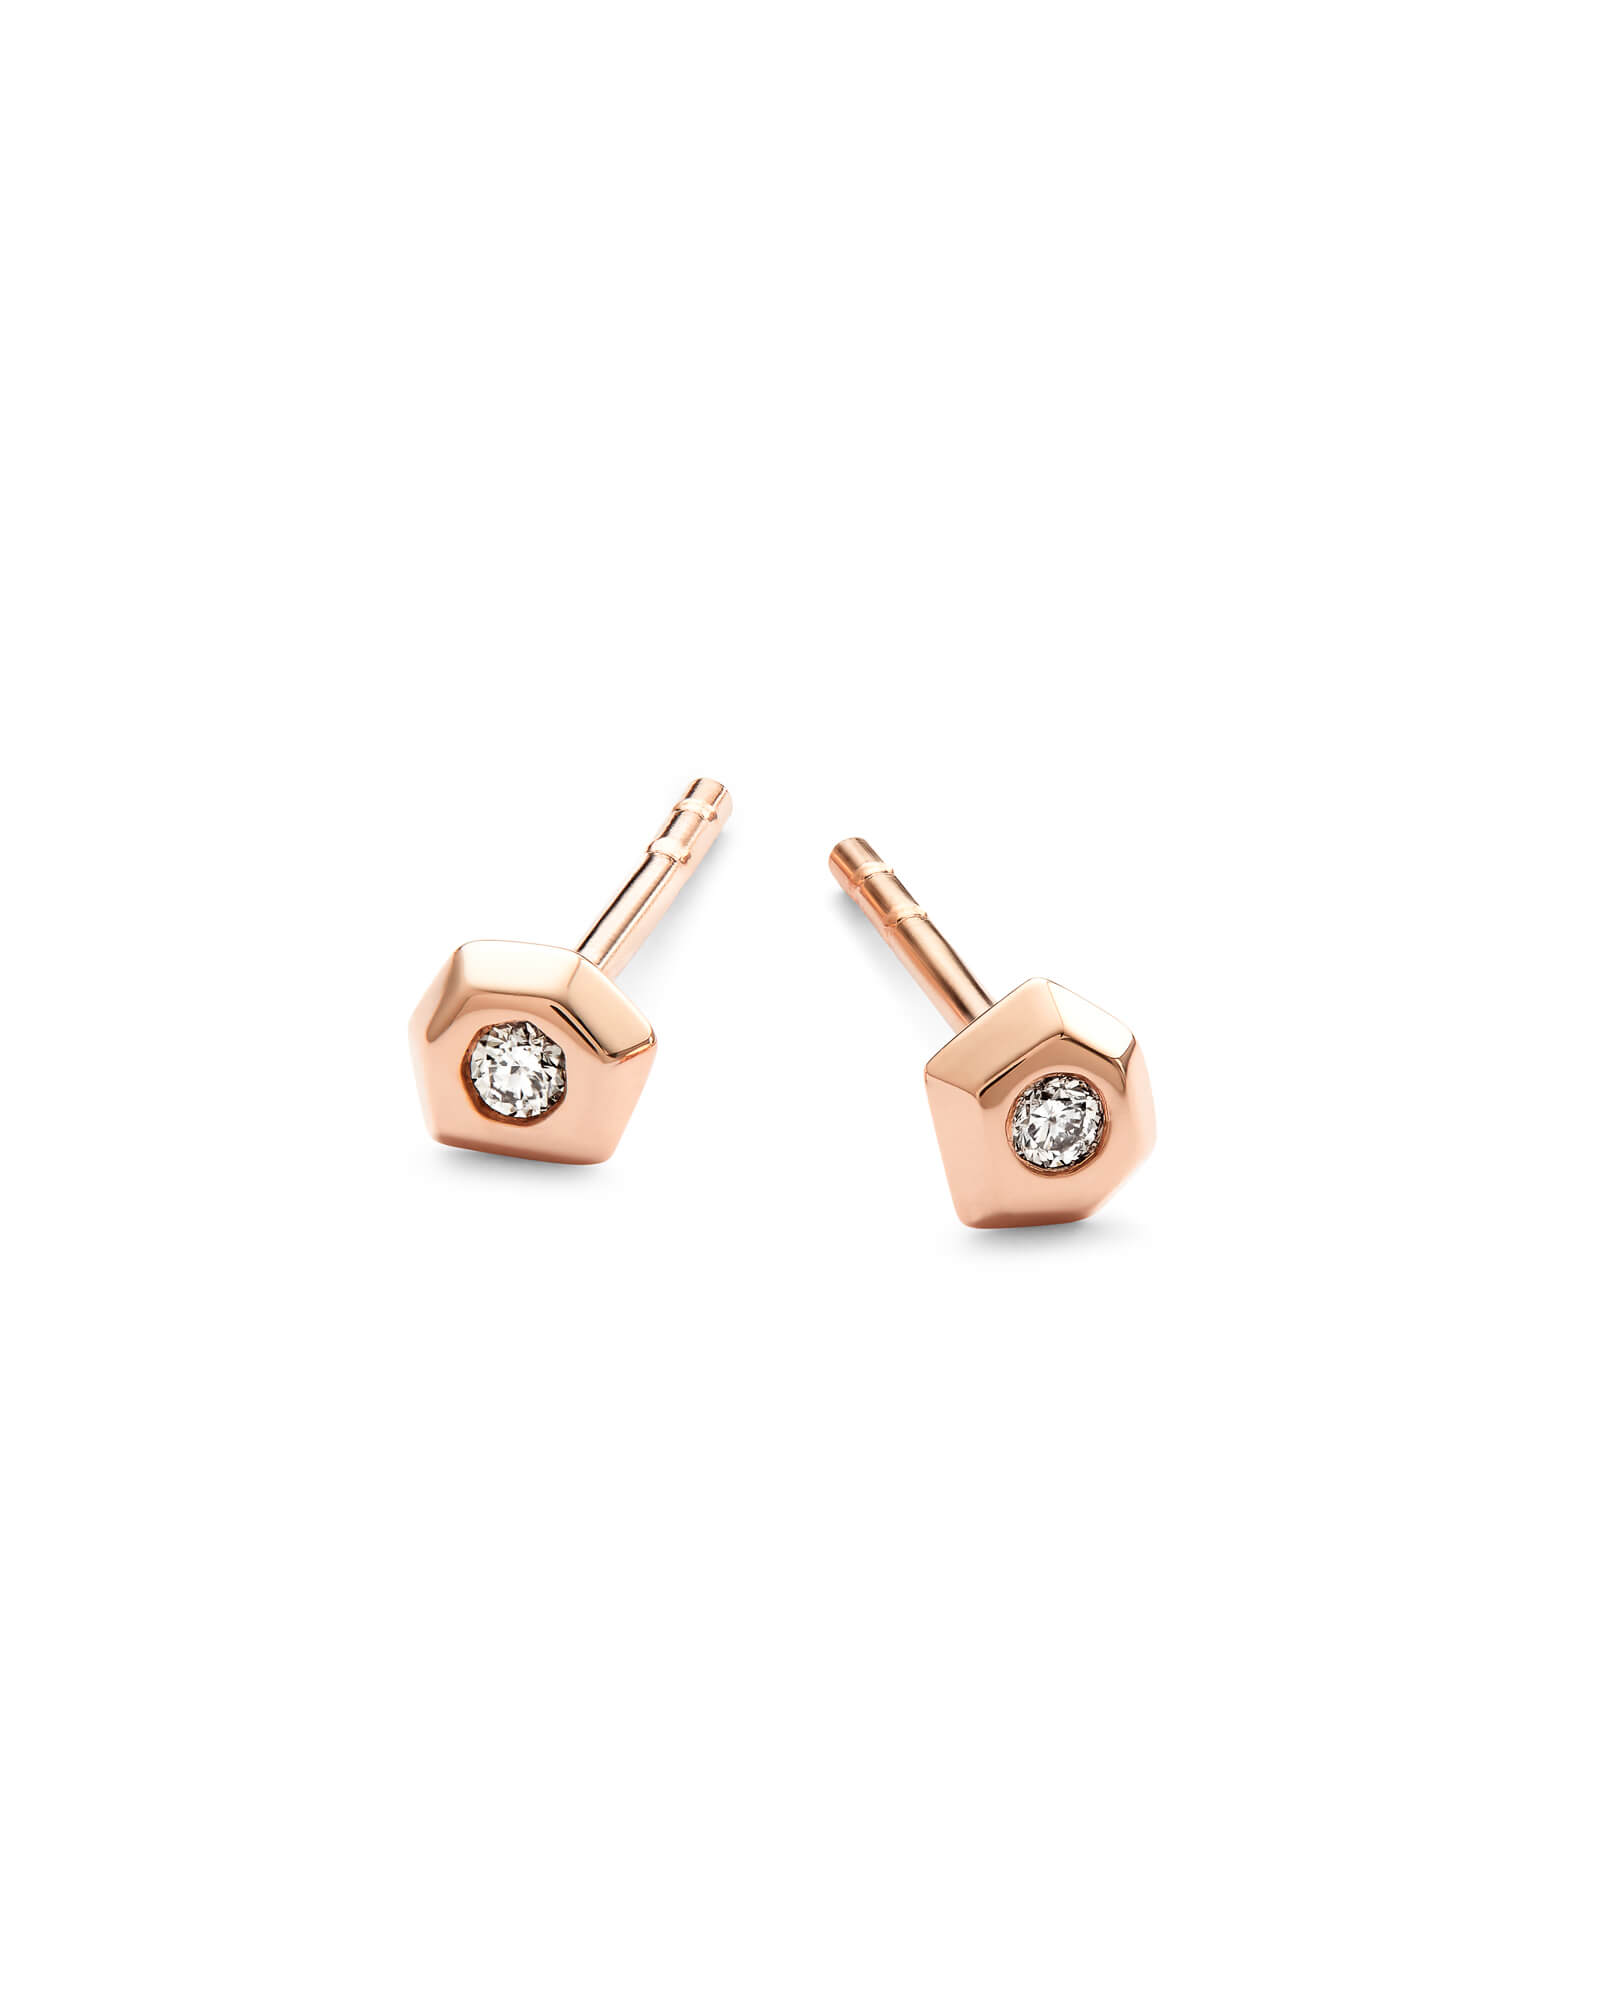 Janiya 14k Rose Gold Stud Earrings in White Diamond